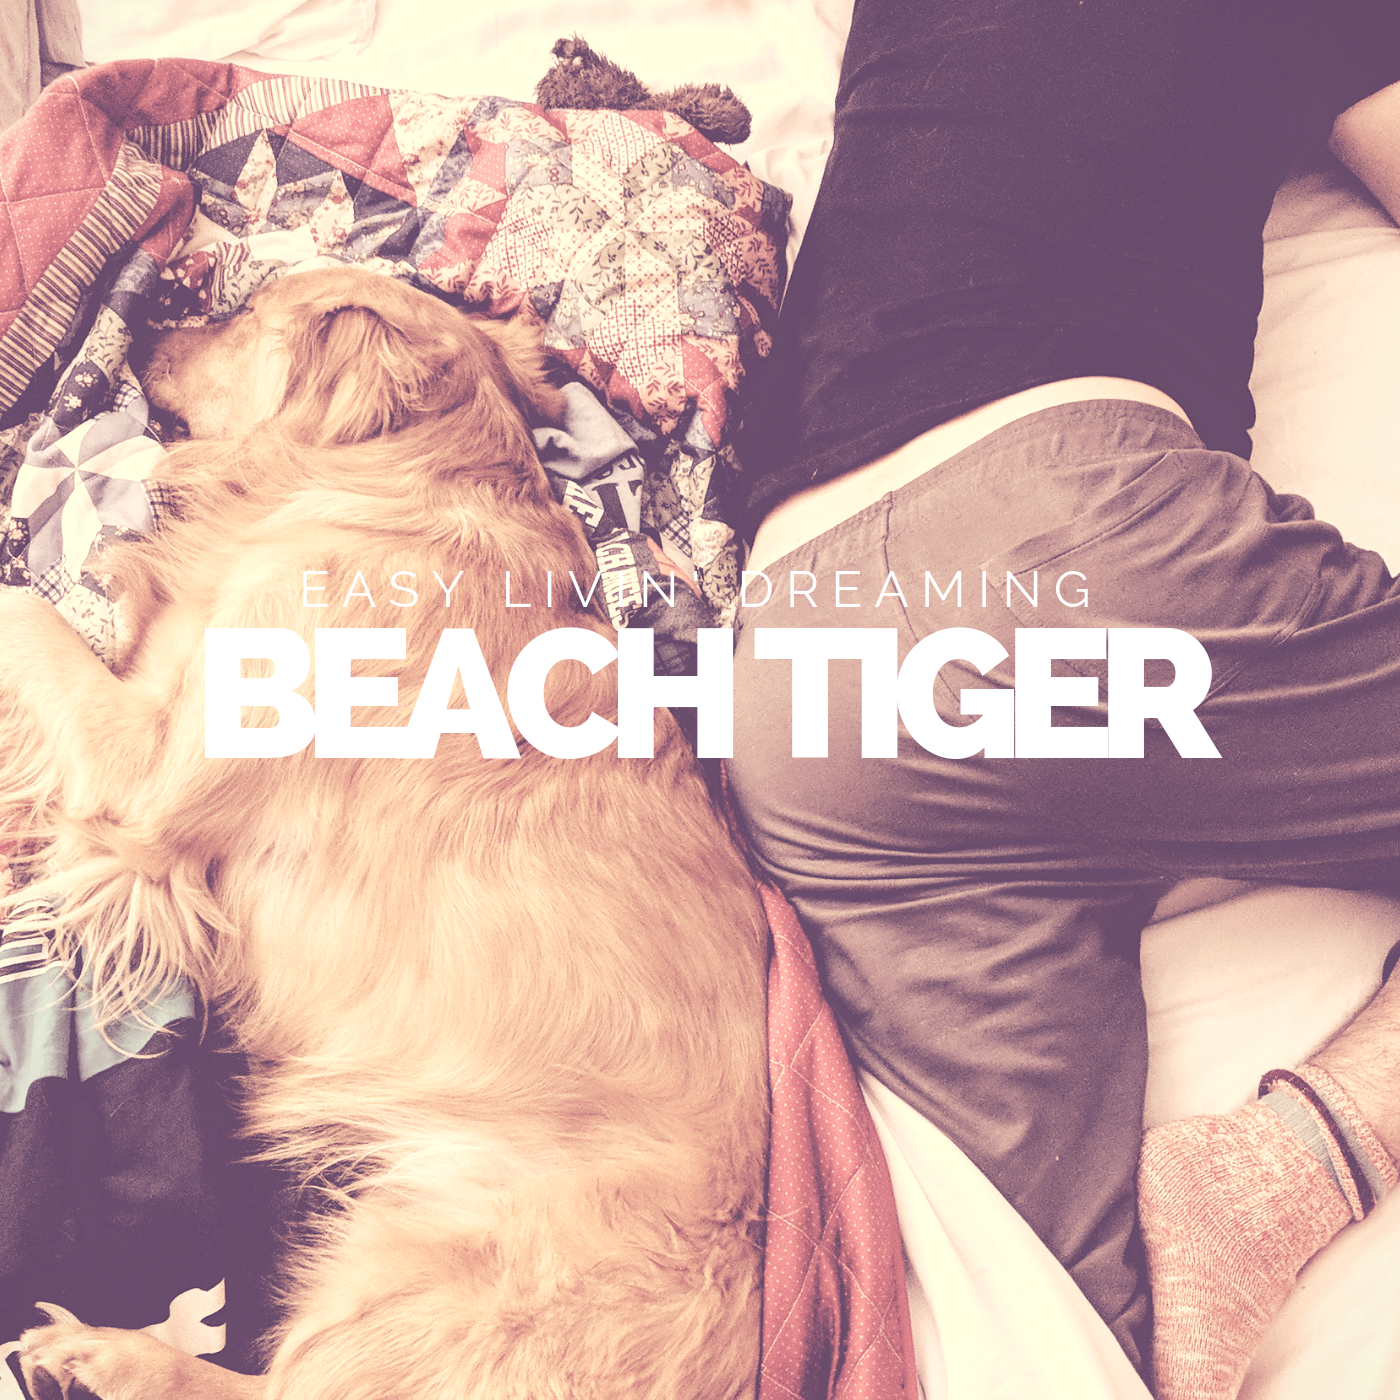 "Beach Tiger - ""Easy Livin' Dreaming"" EP Mixing"